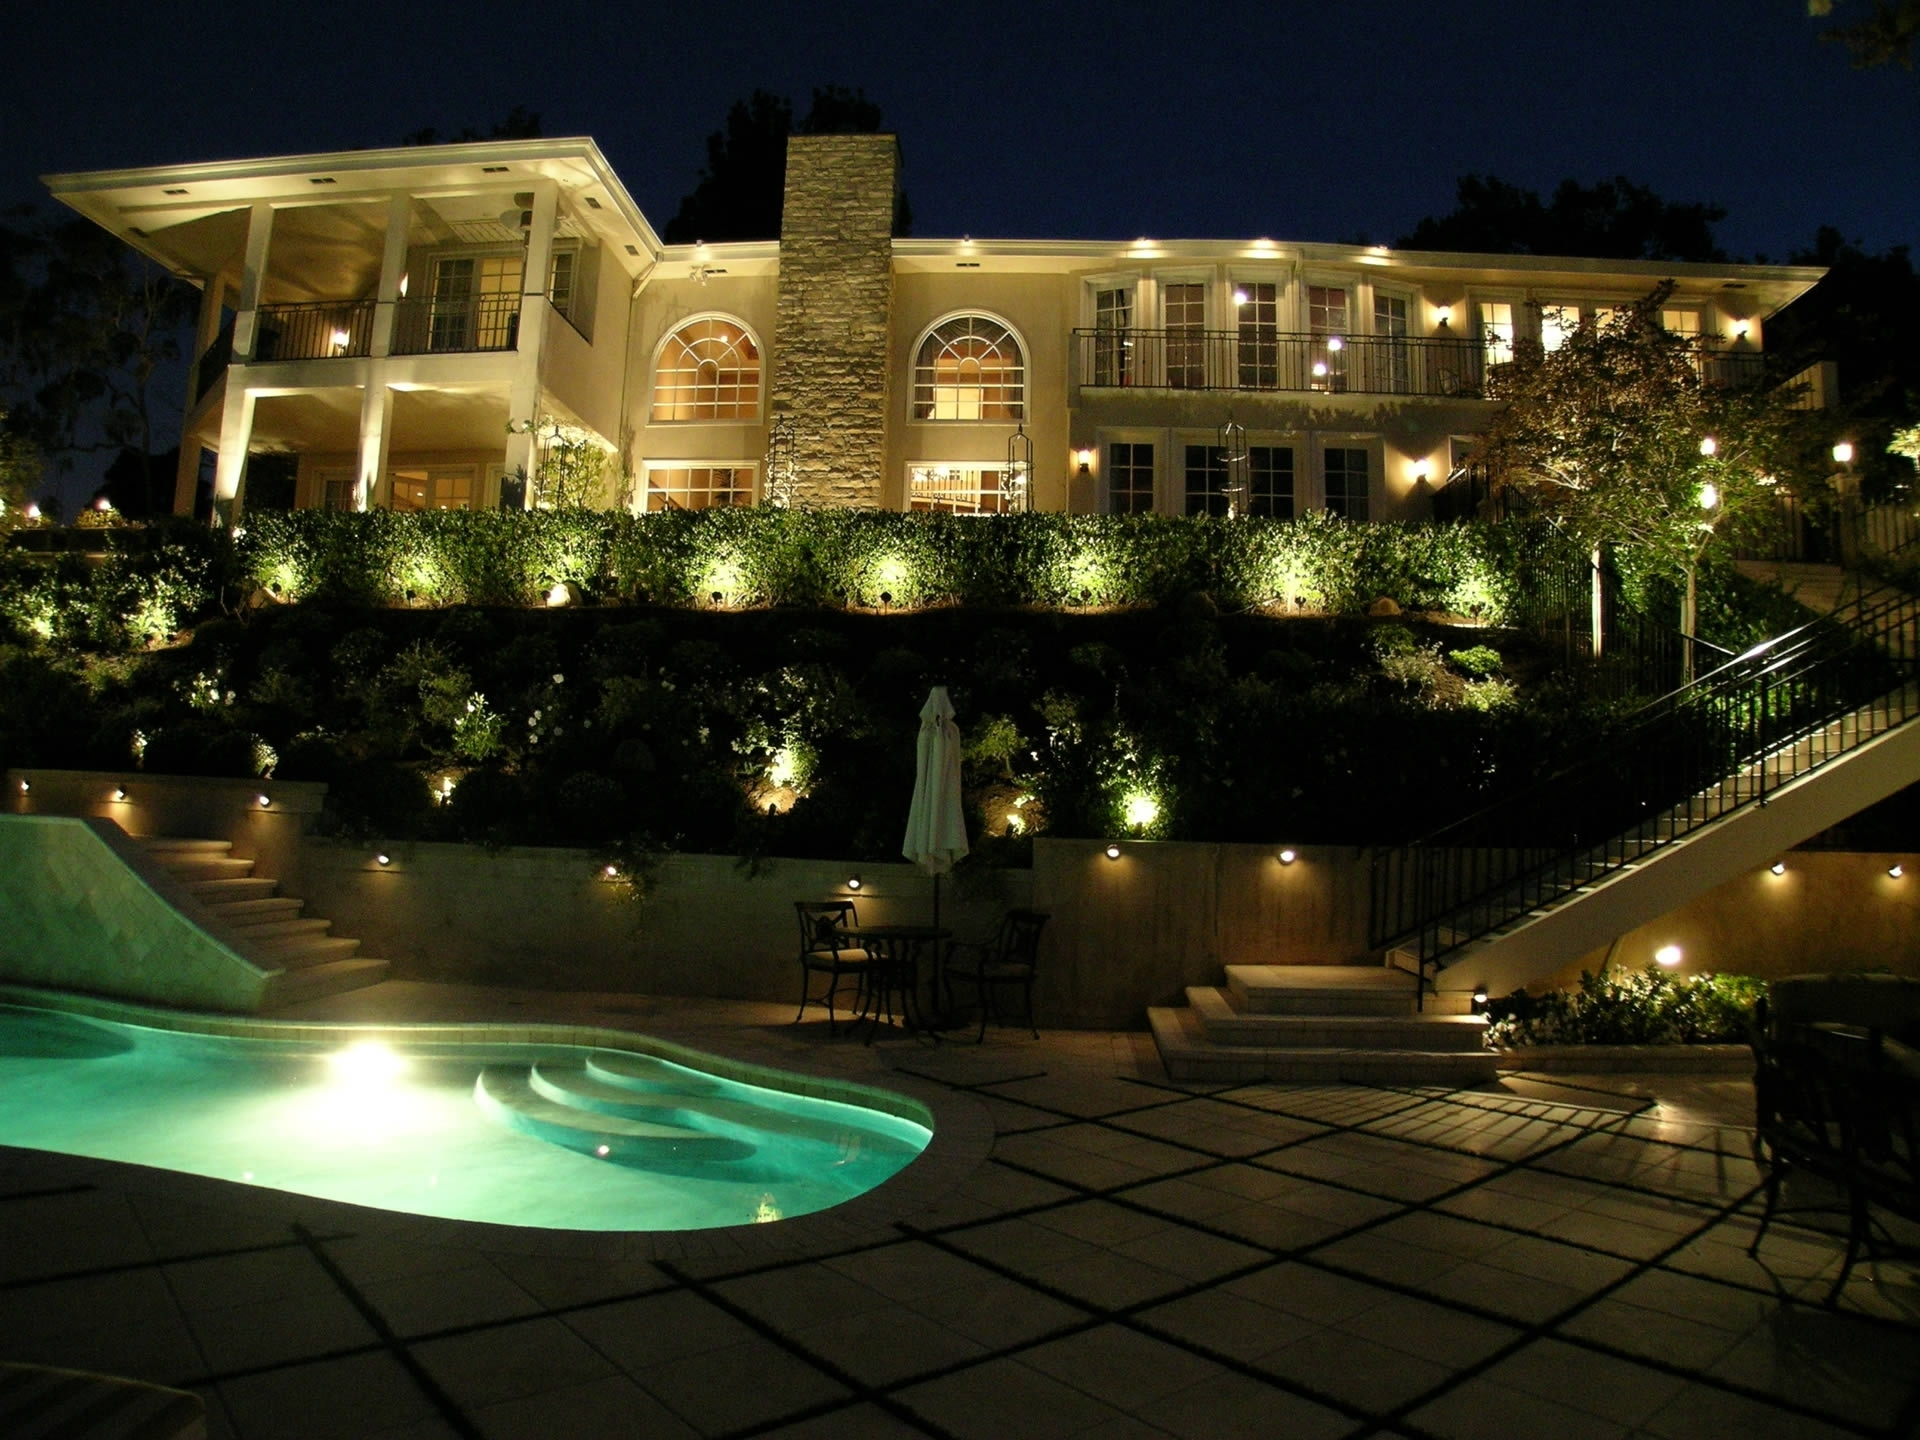 Kichler Outdoor Landscape Lighting With Most Up To Date This Landscape Looks Really Great (View 5 of 20)